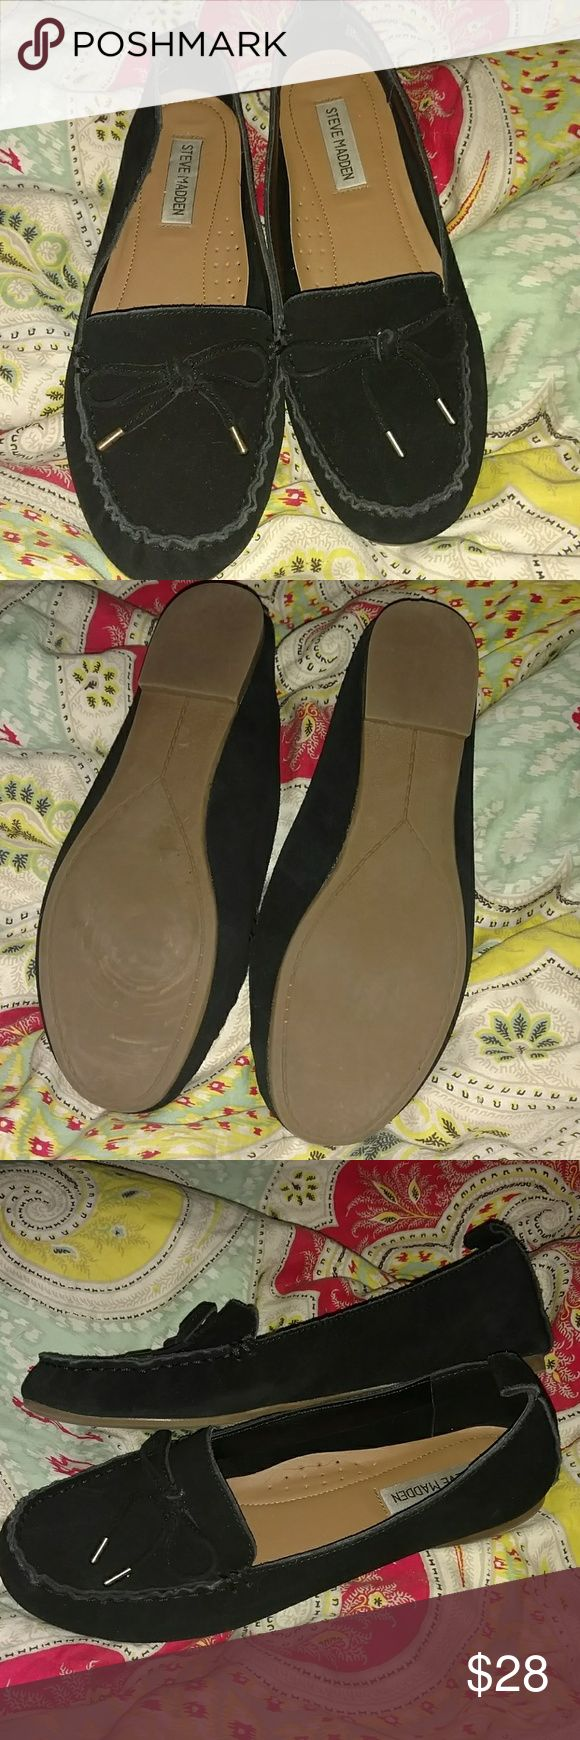 Steve Madden black suede loafers Hardly ever worn very comfortable Steve Madden Shoes Flats & Loafers